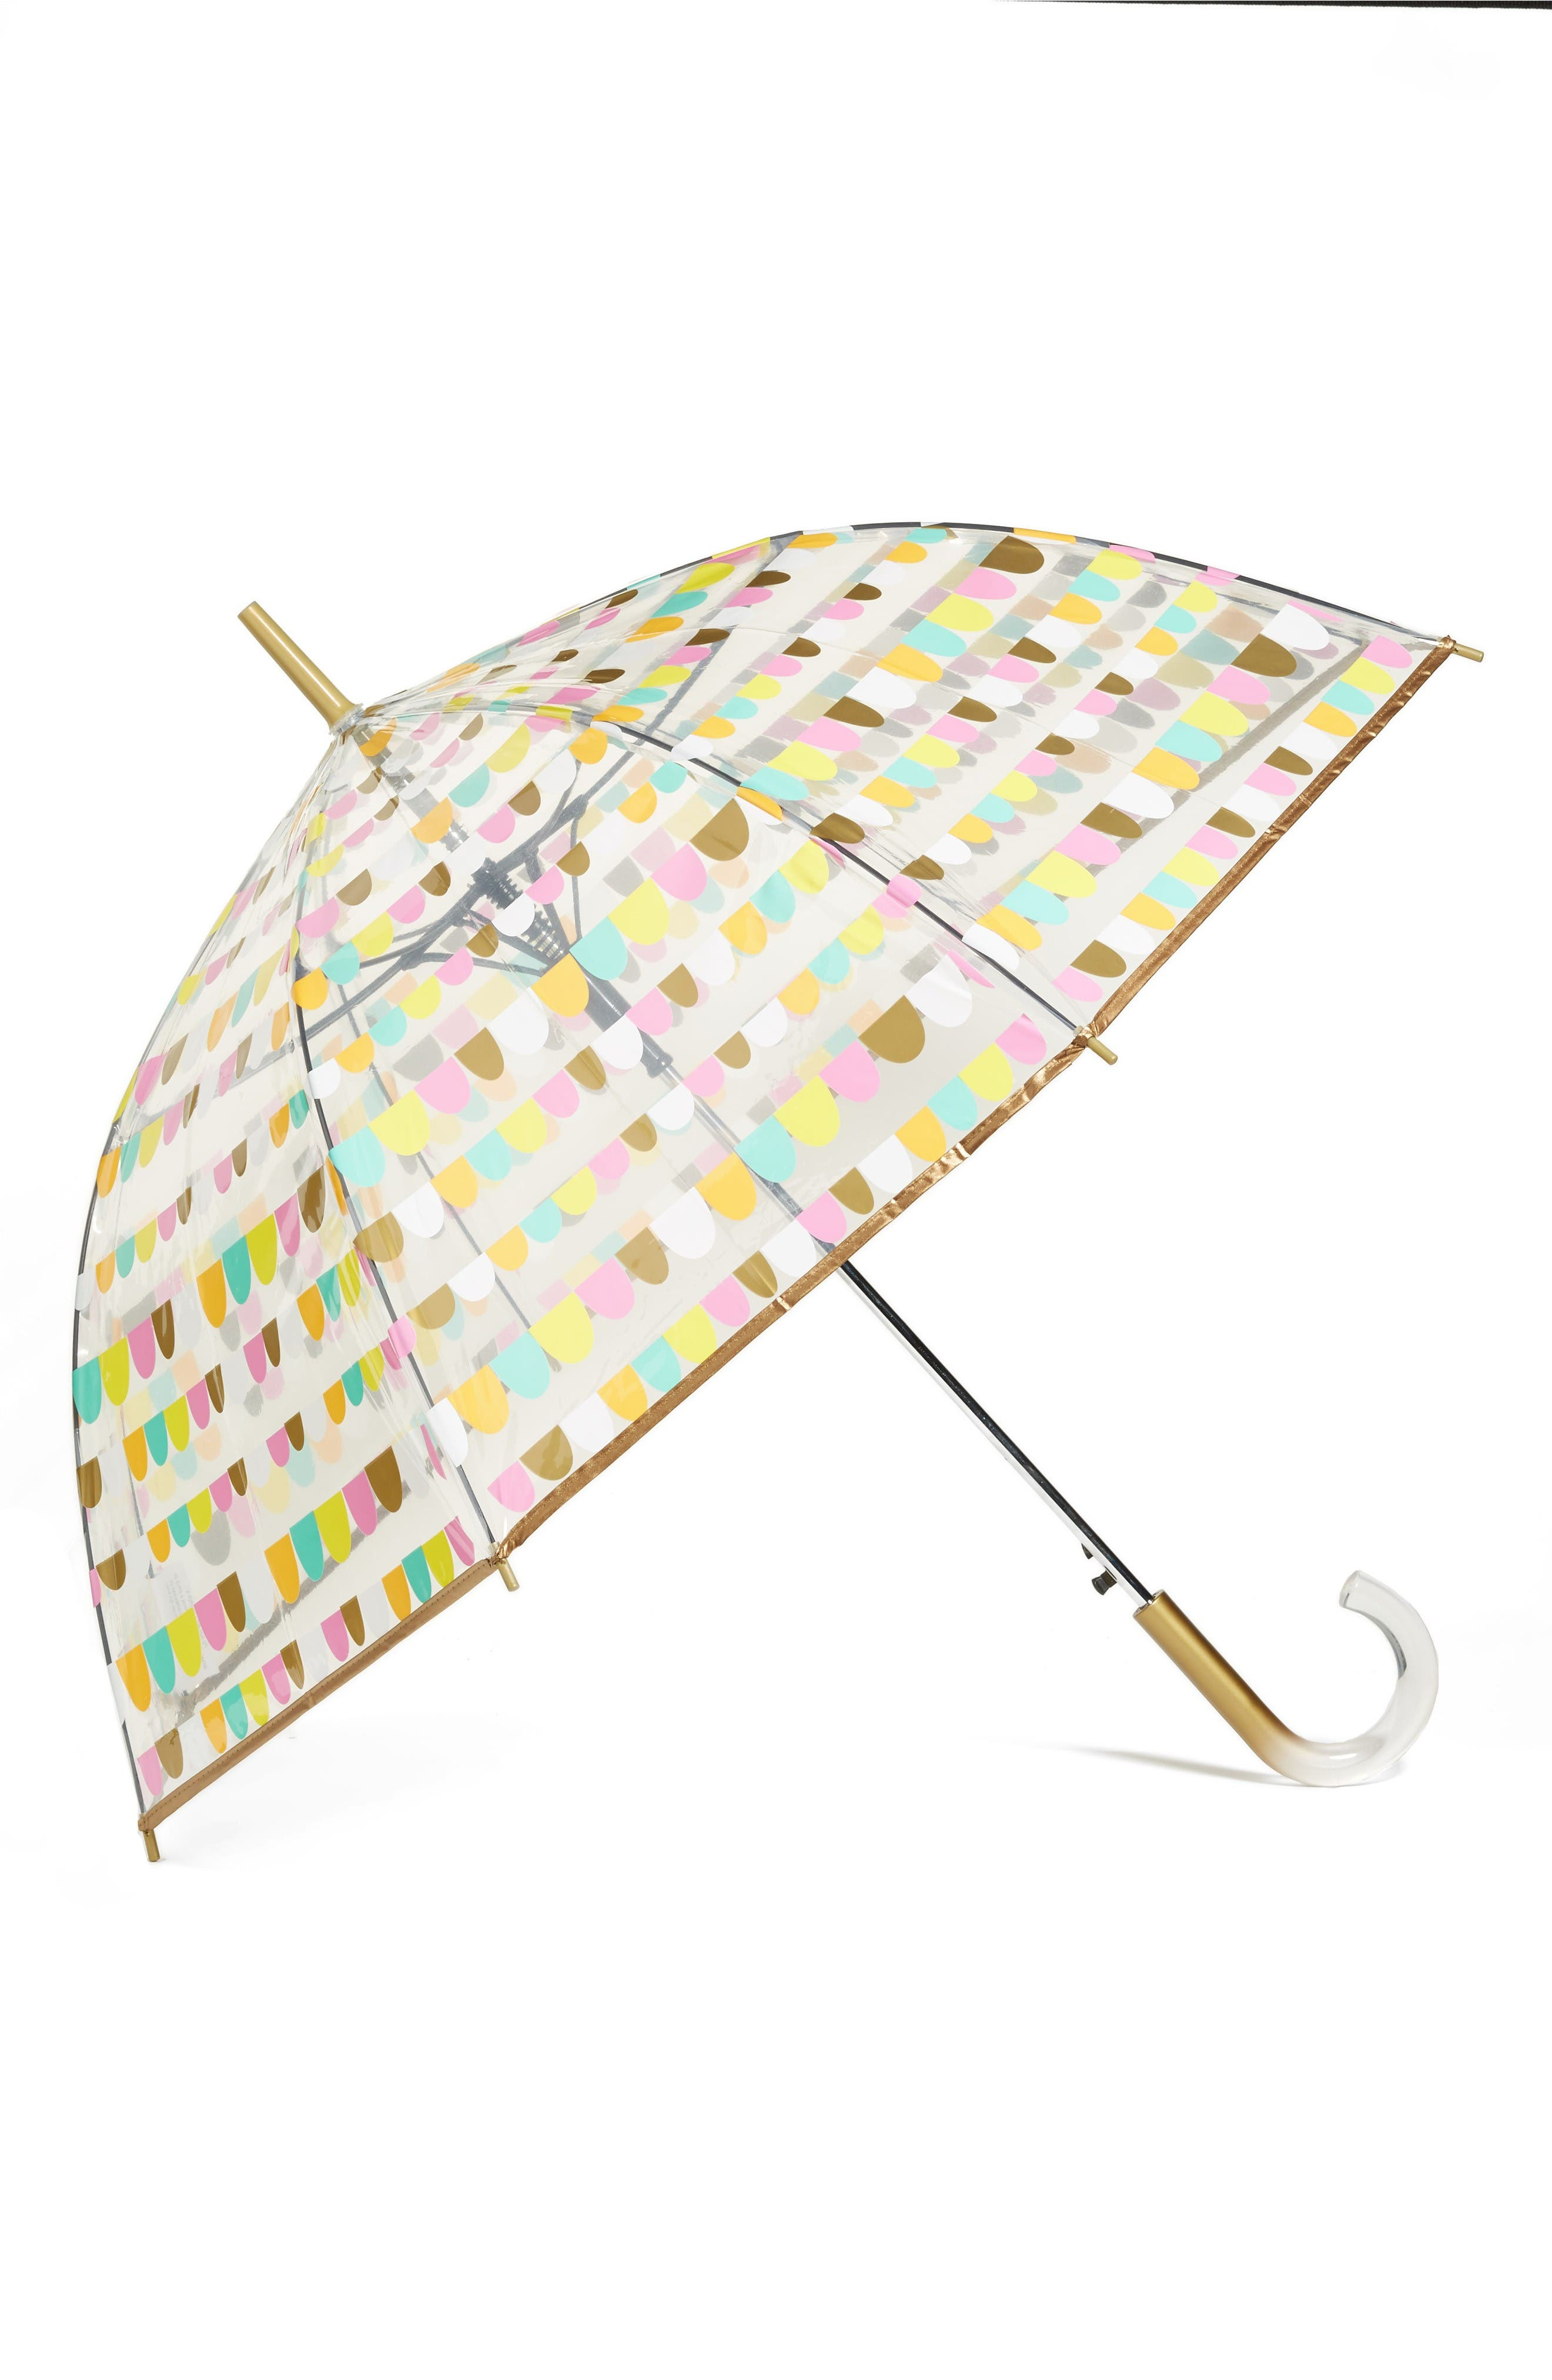 SHEDRAIN 'The Bubble' Auto Open Stick Umbrella